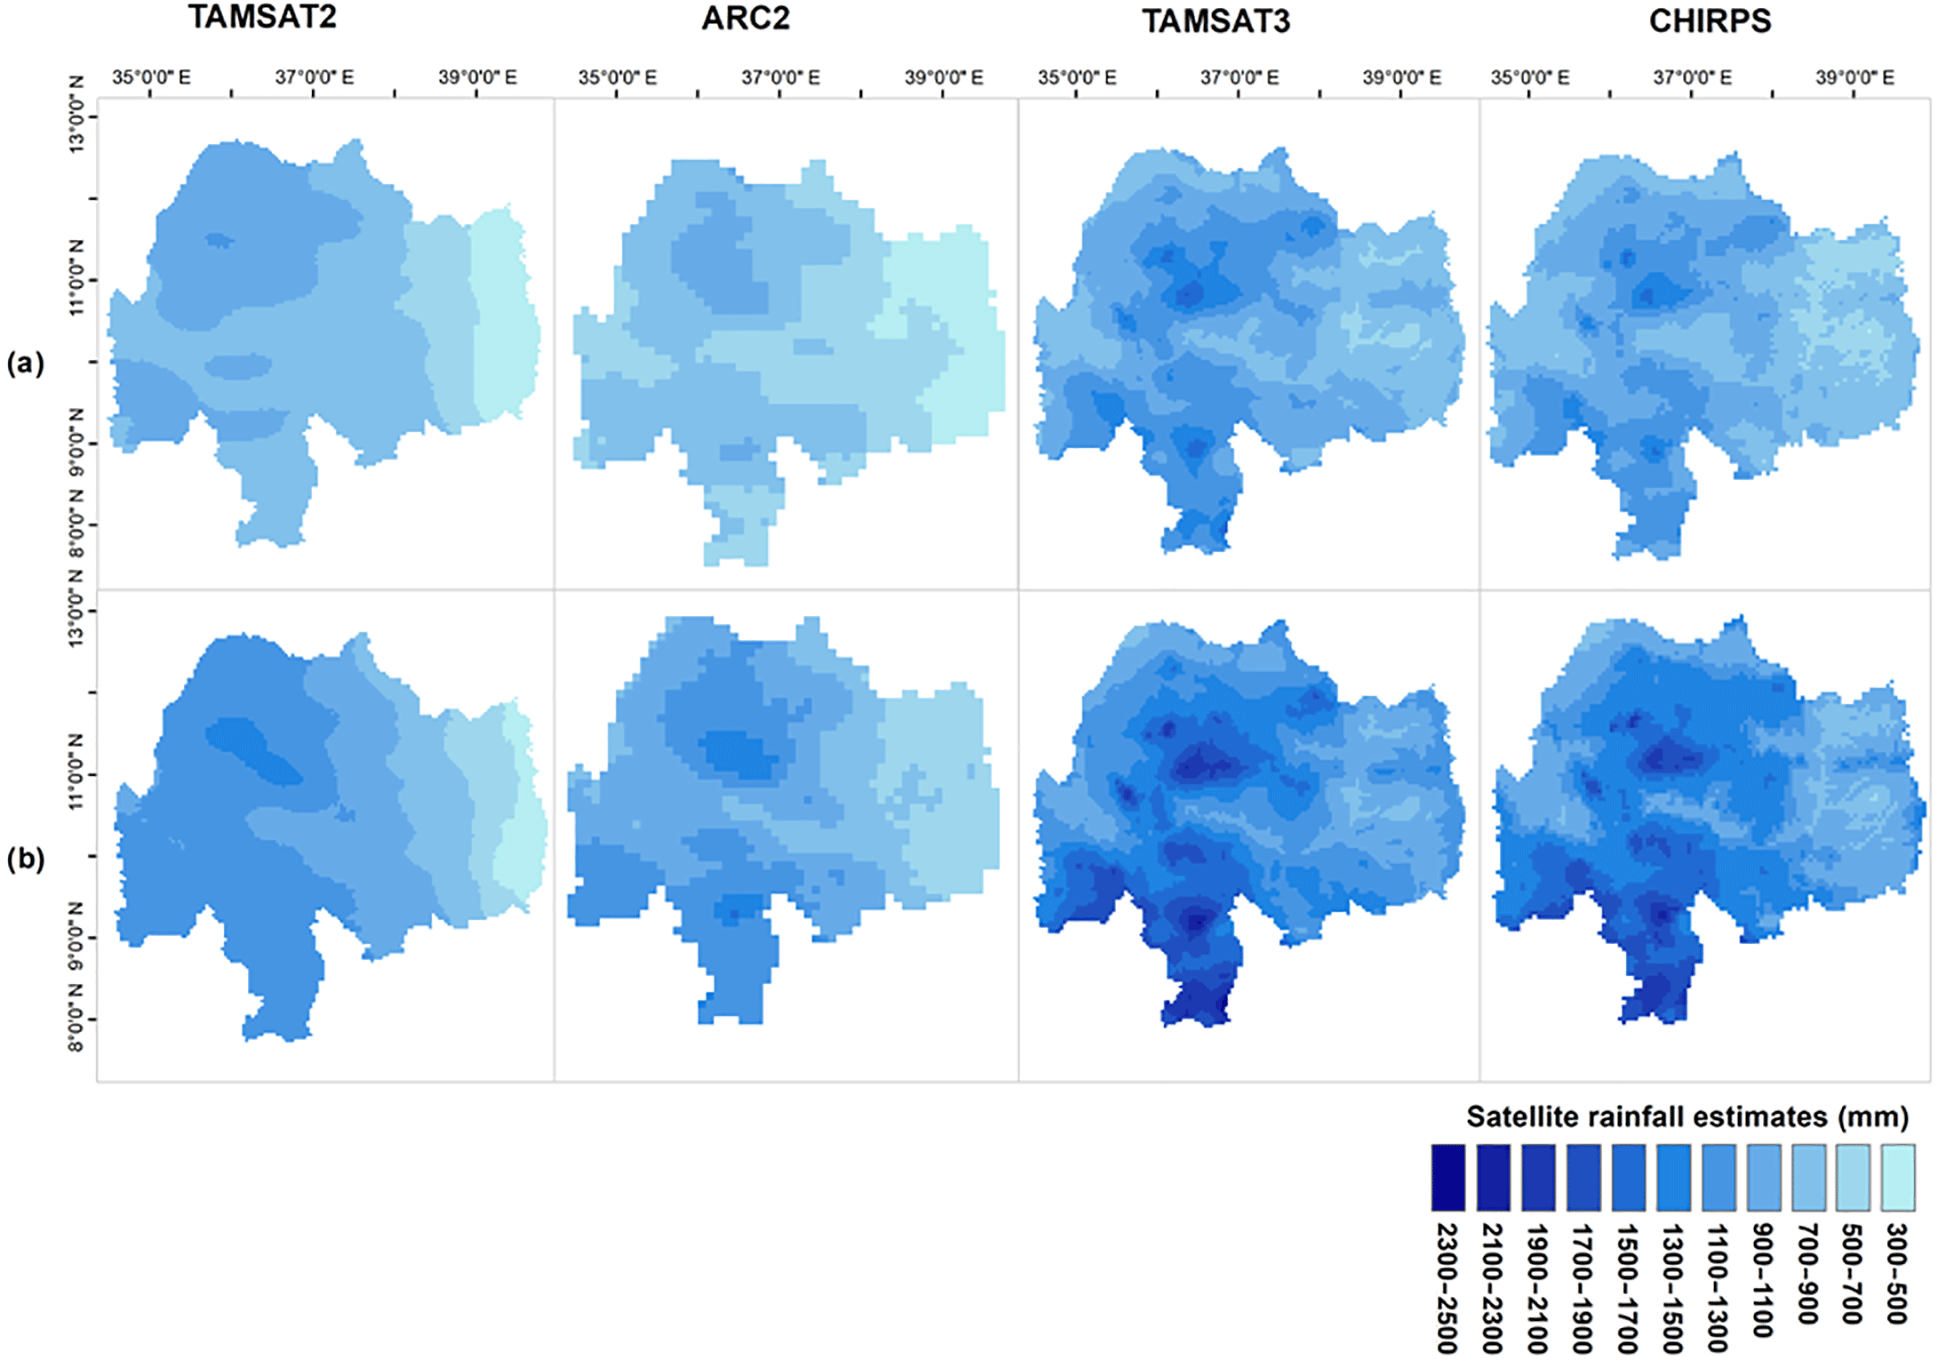 AMT - Validation of new satellite rainfall products over the